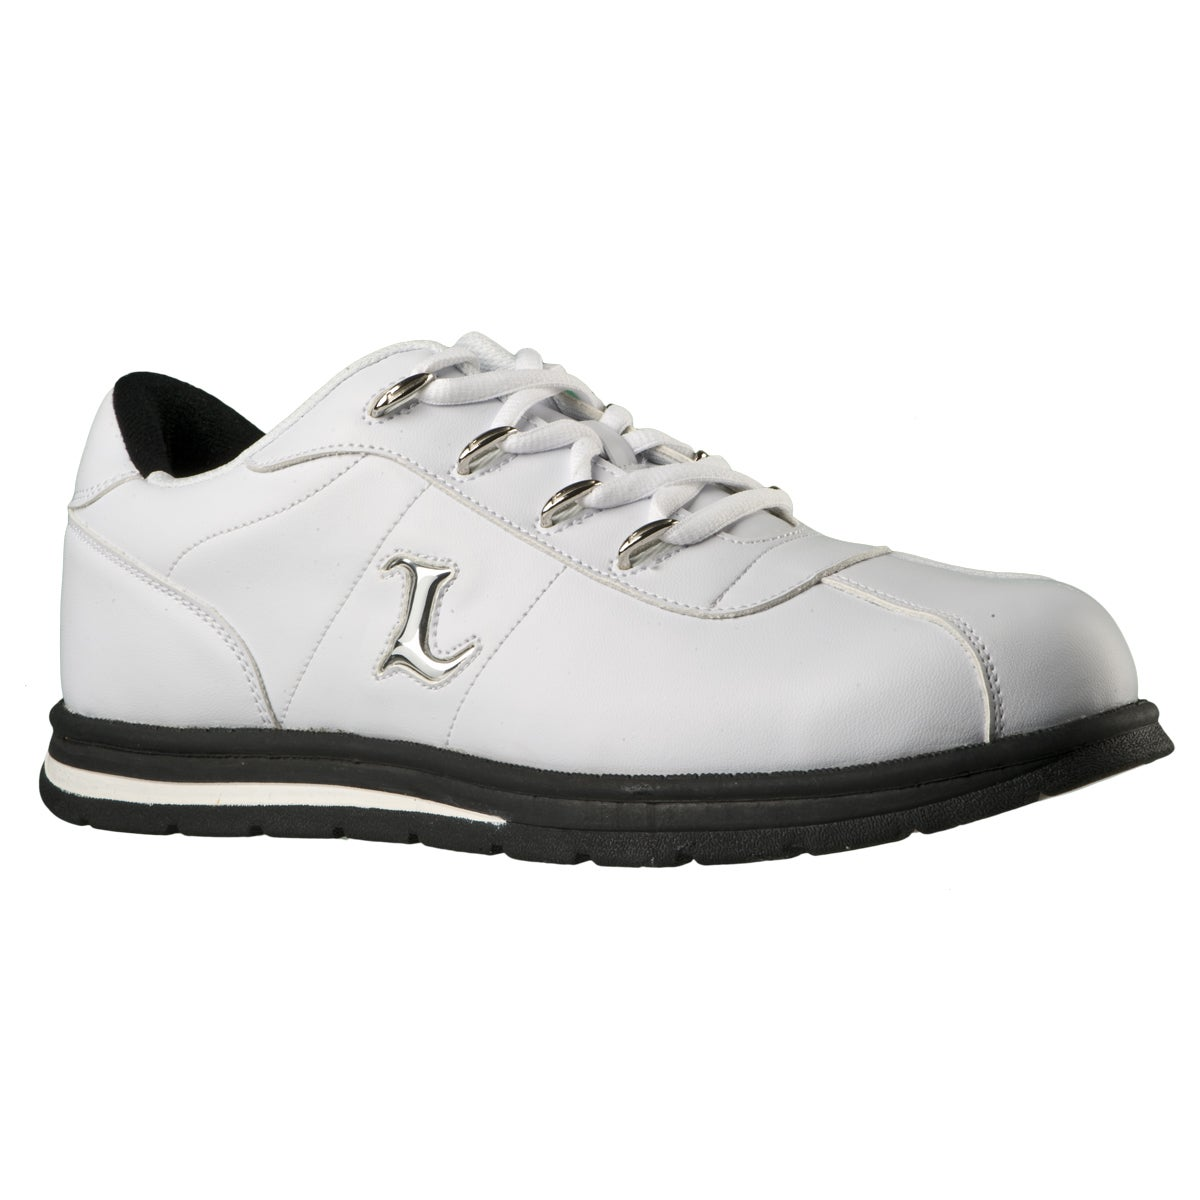 Lugz Men's Zrocs DX Oxford Shoes